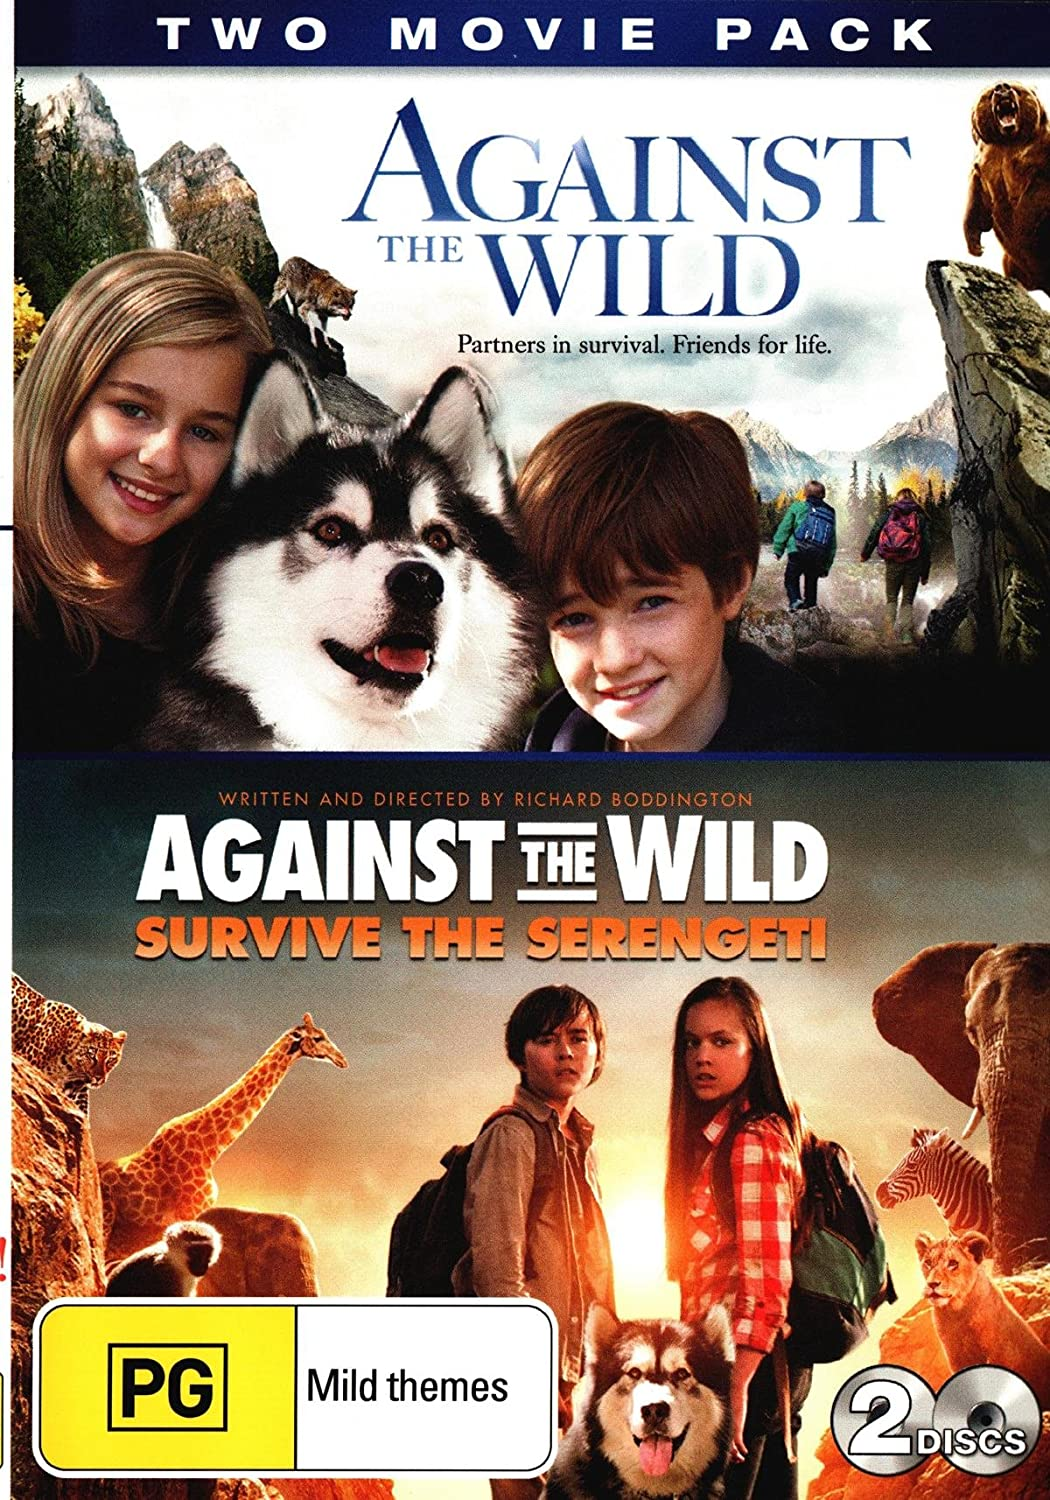 2fb1d9bbe8da51 Amazon.com  Two Movie Pack  Against the Wild + Against the Wild Survive the  Serengeti (DVD)  Movies   TV